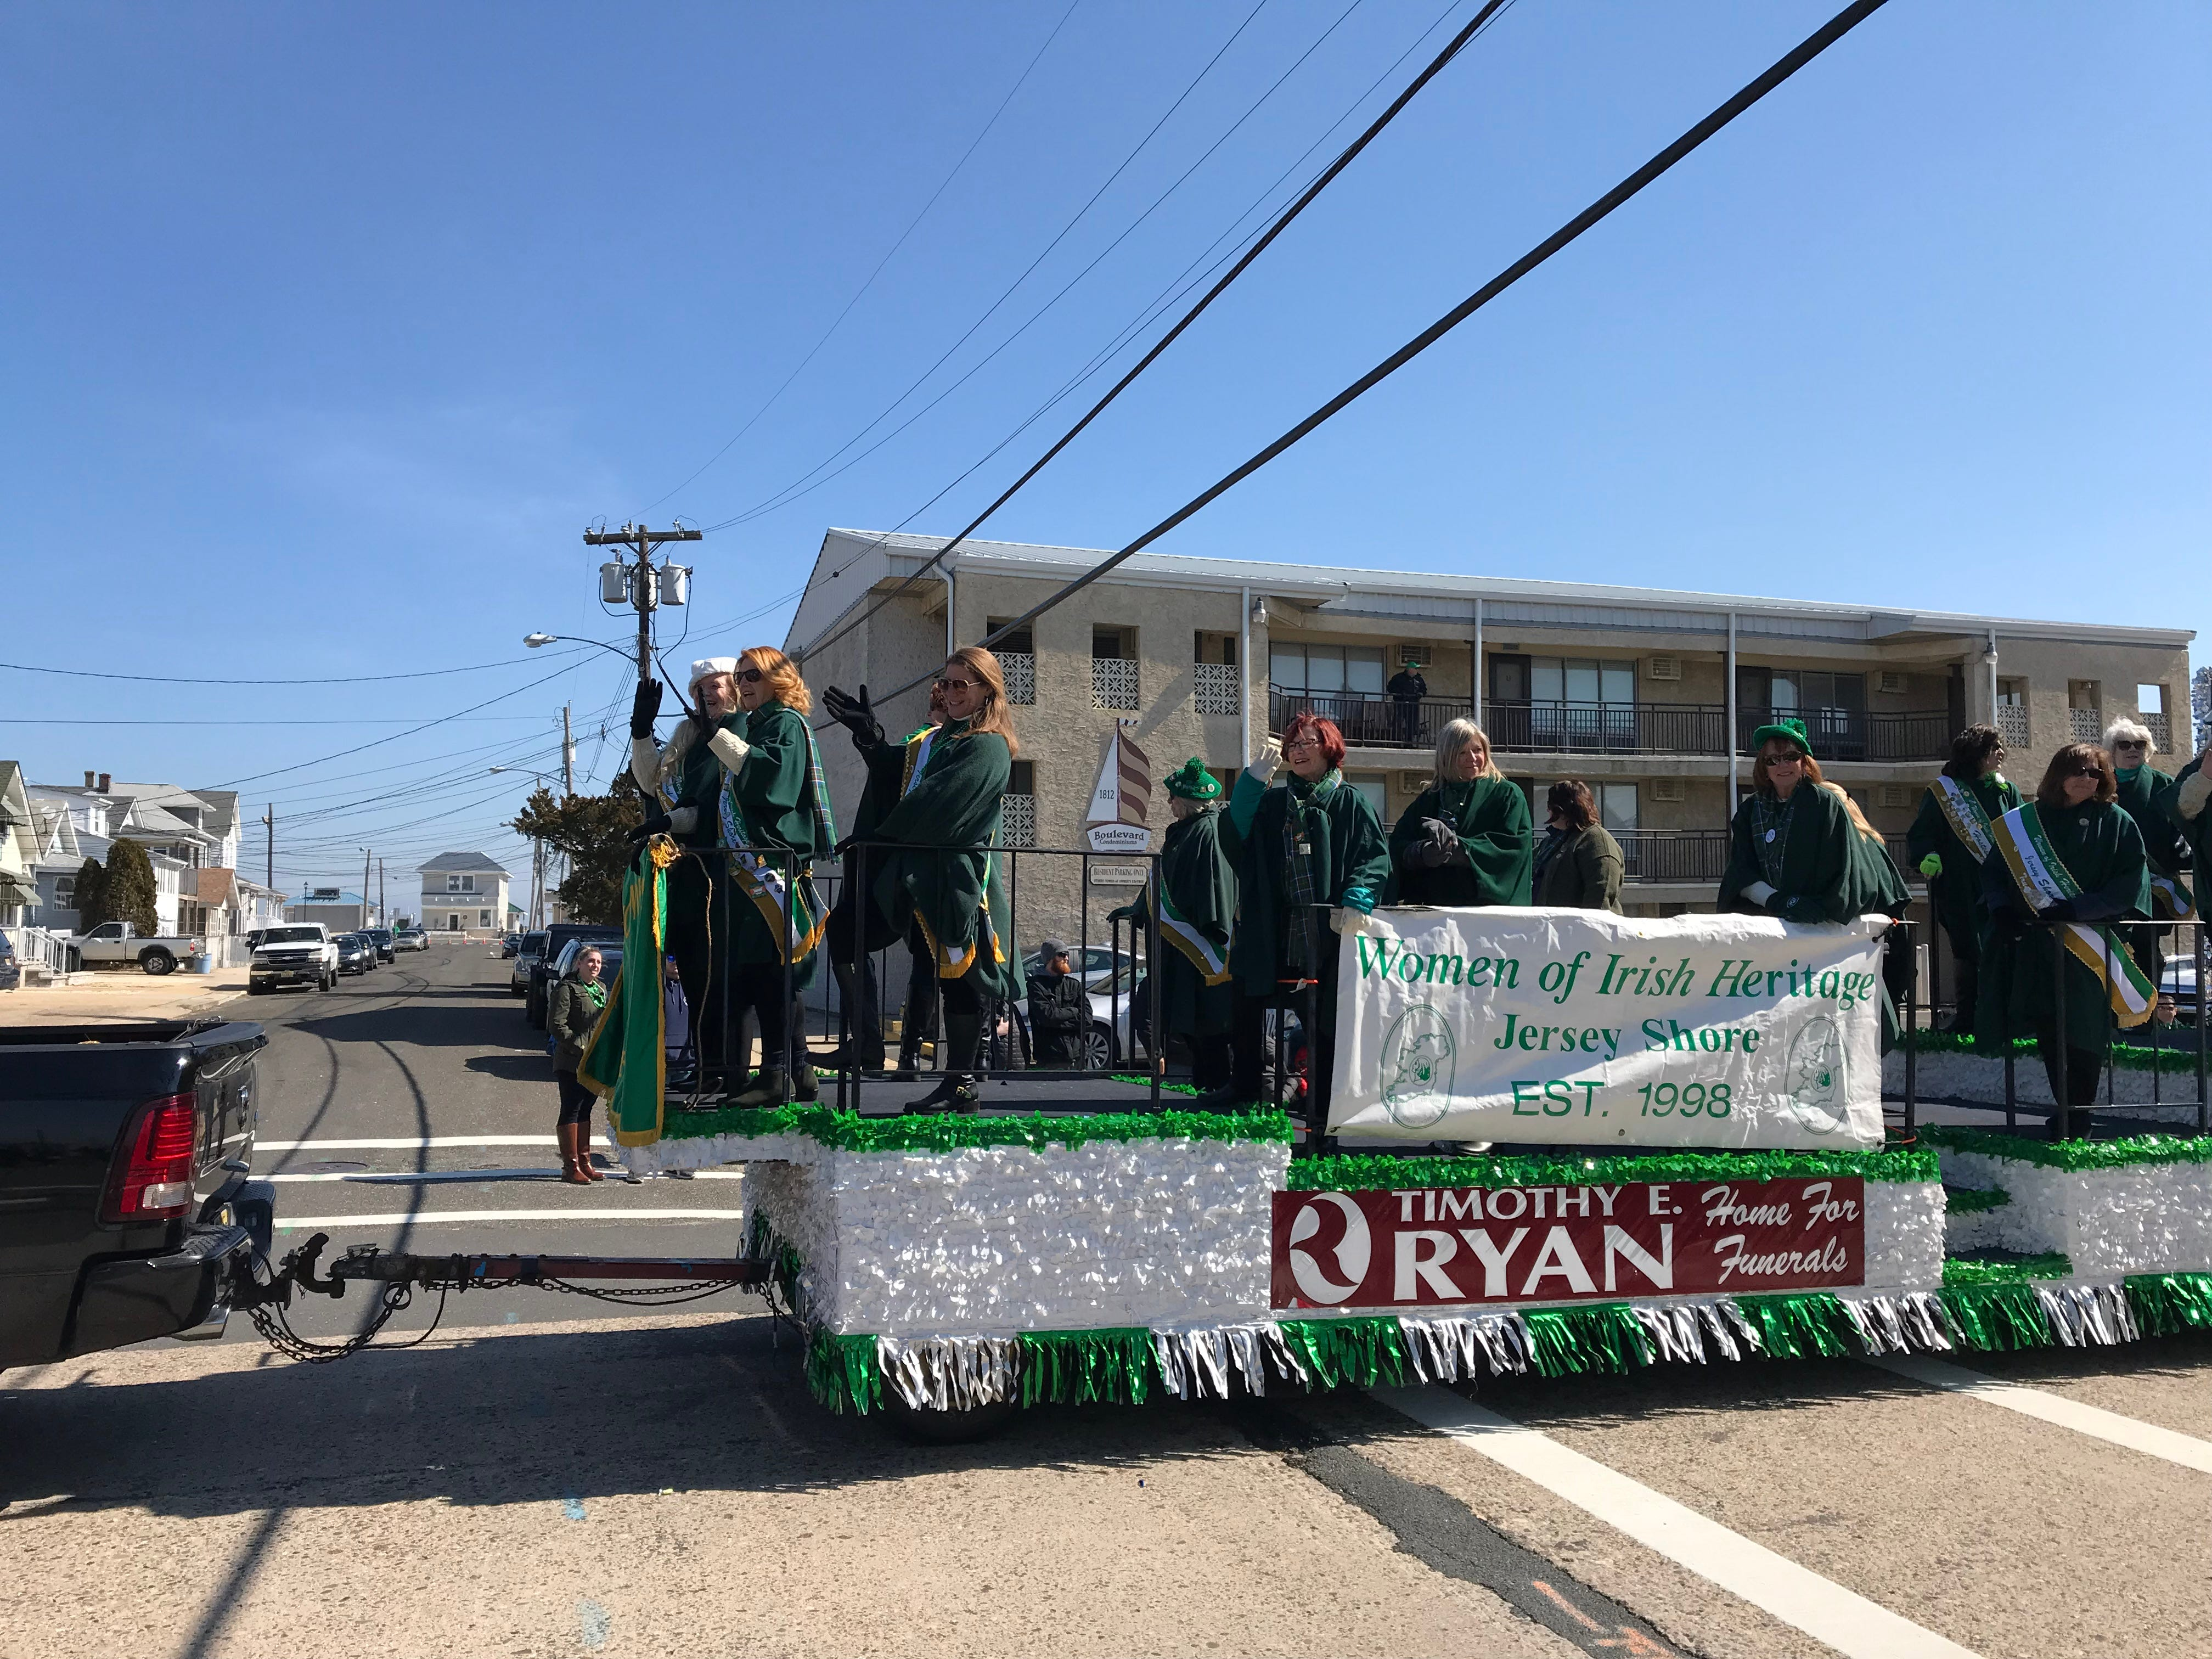 Crowds celebrated all things Irish as they lined the streets of Seaside Heights Saturday for the annual Ocean County St. Patrick's Day Parade.